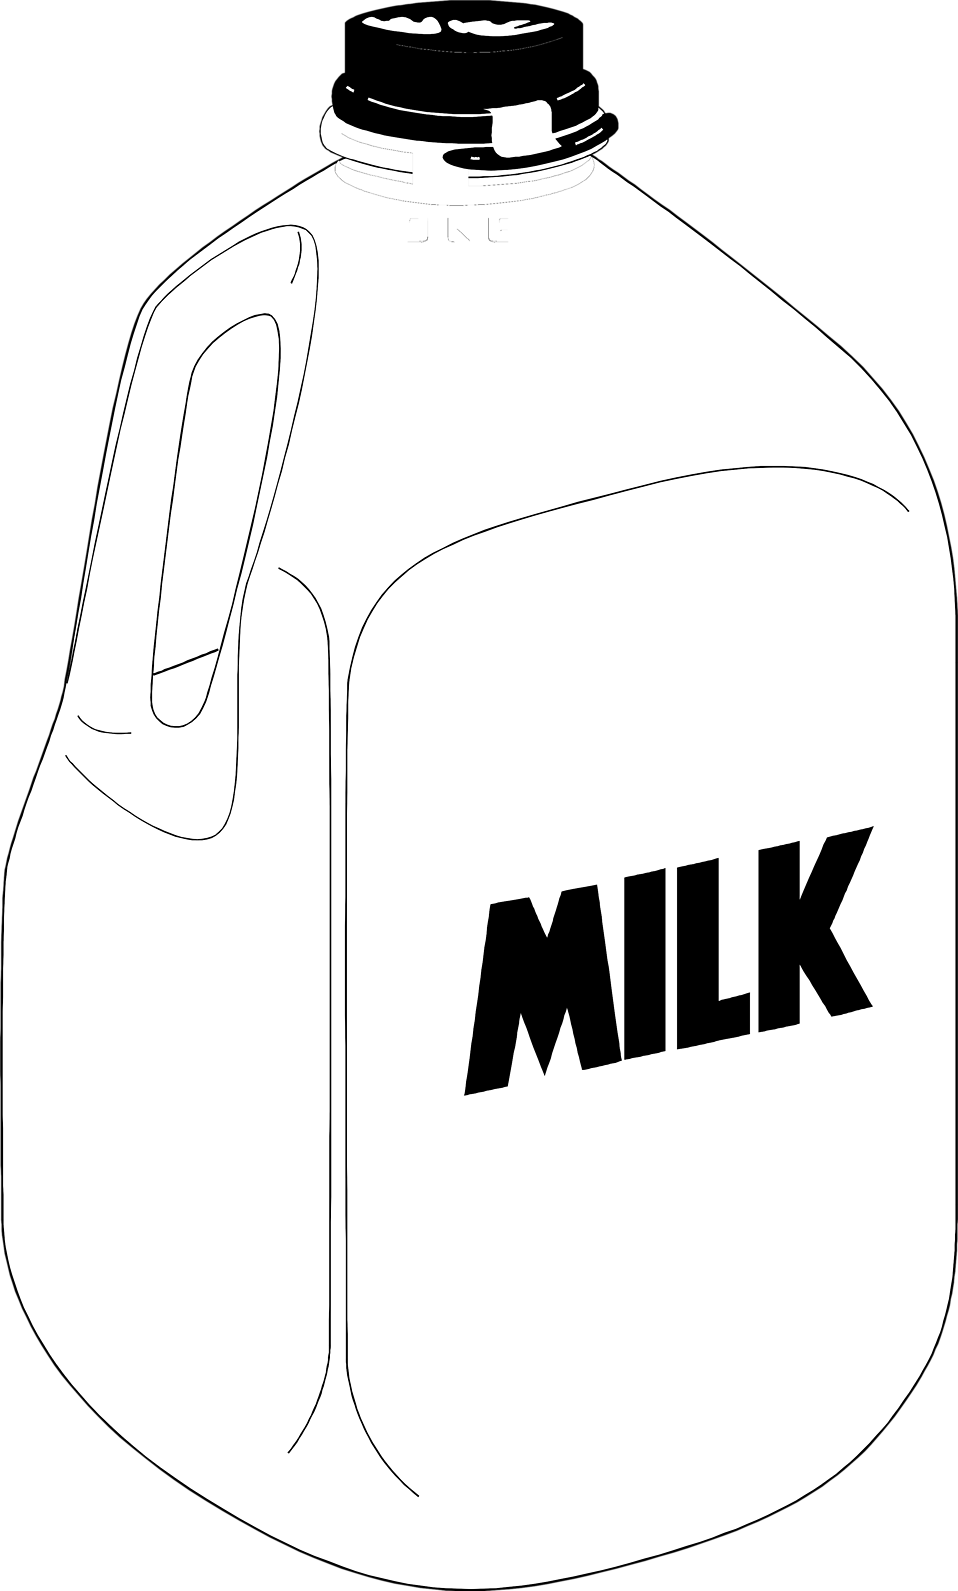 http://www.freestockphotos.biz/pictures/5/5112/milk.png